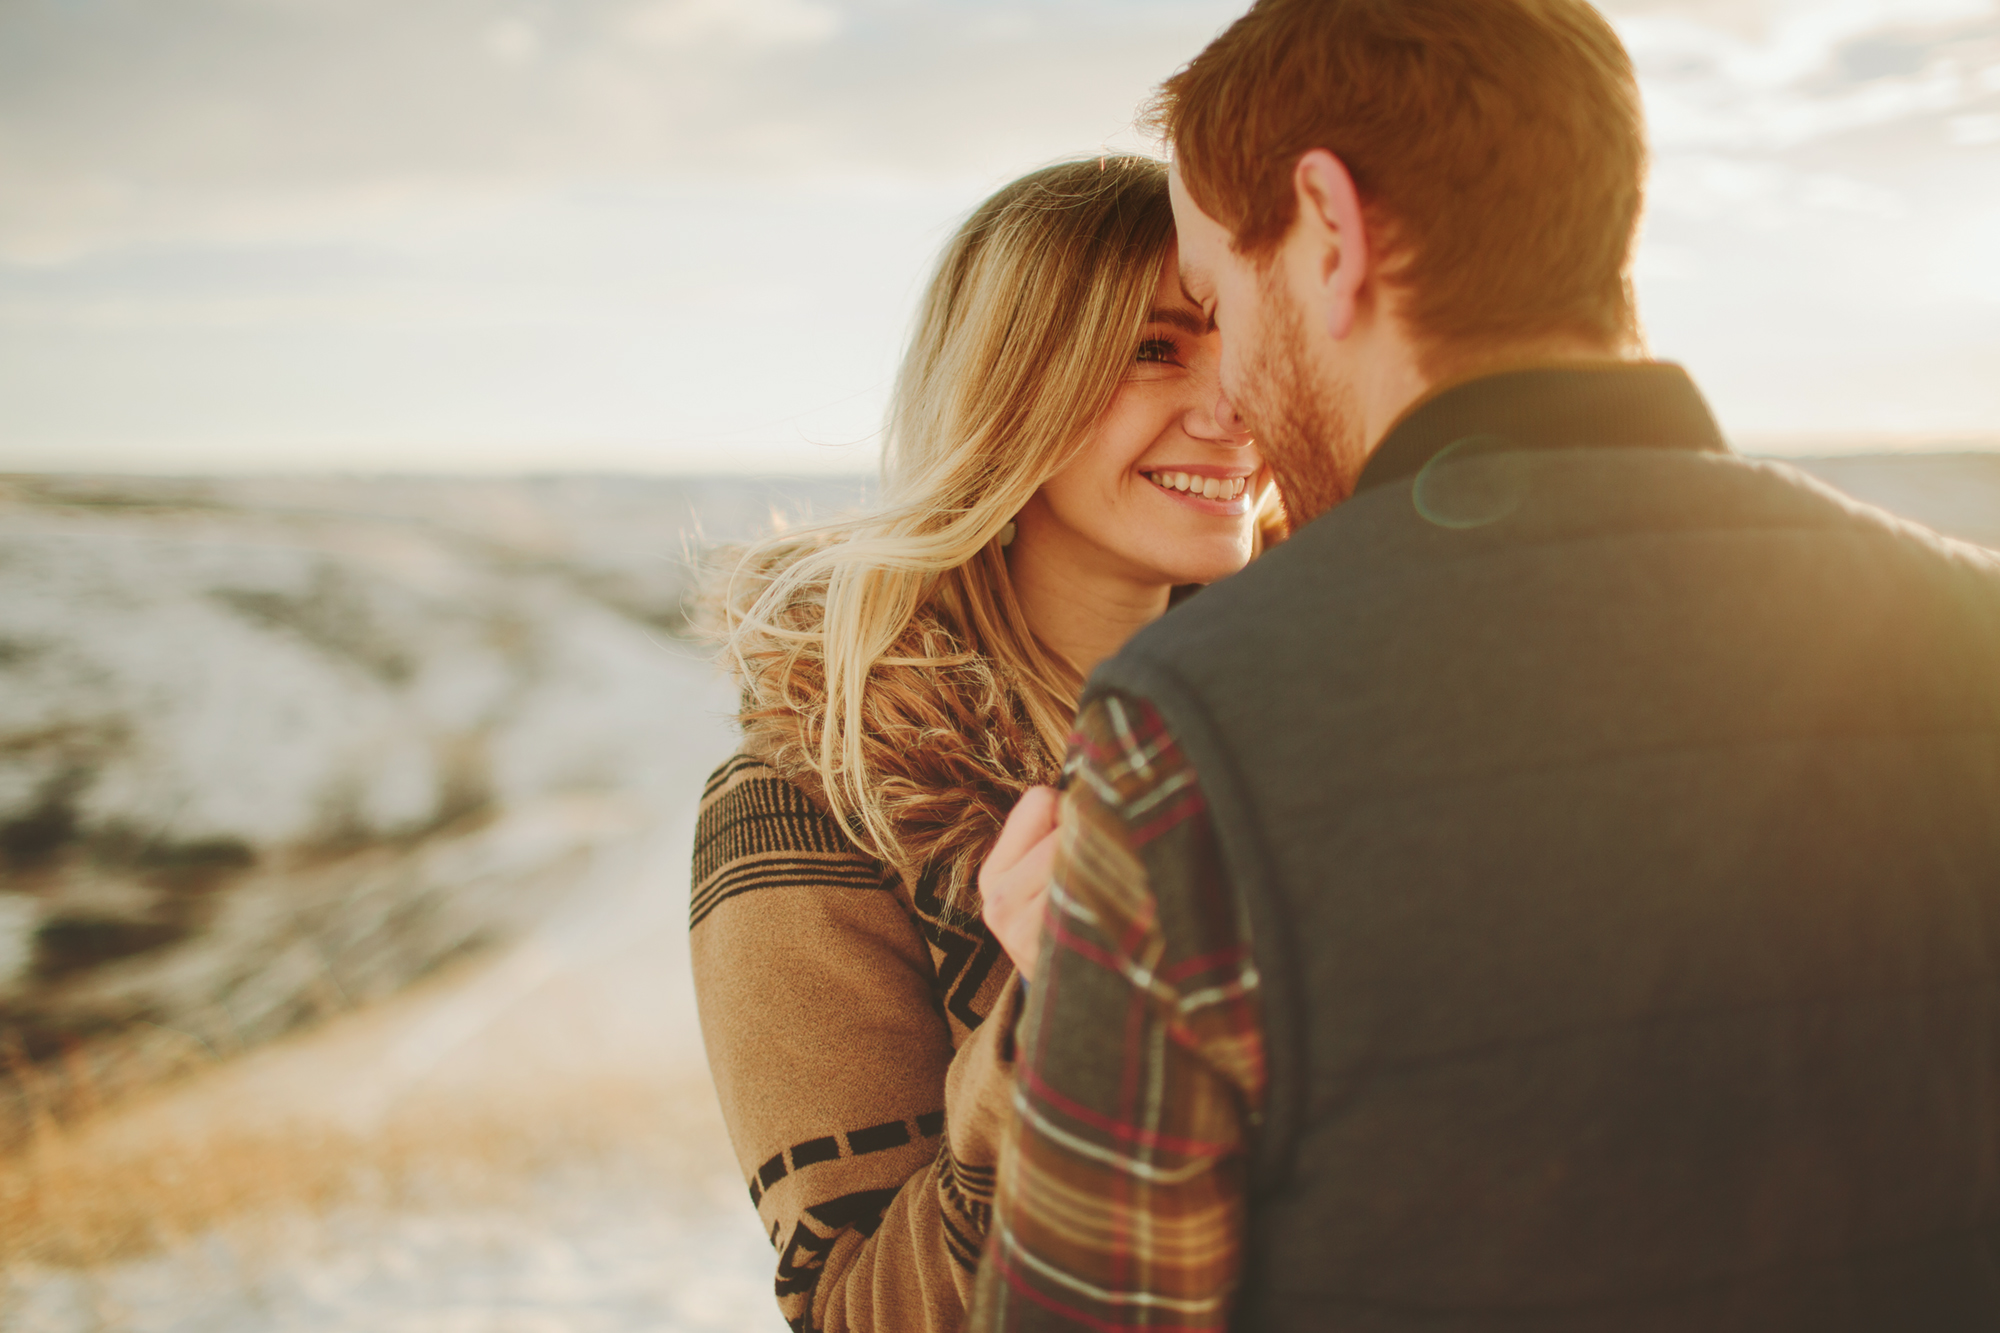 lethbridge engagement session, lethbridge wedding photographer, winter engagement session